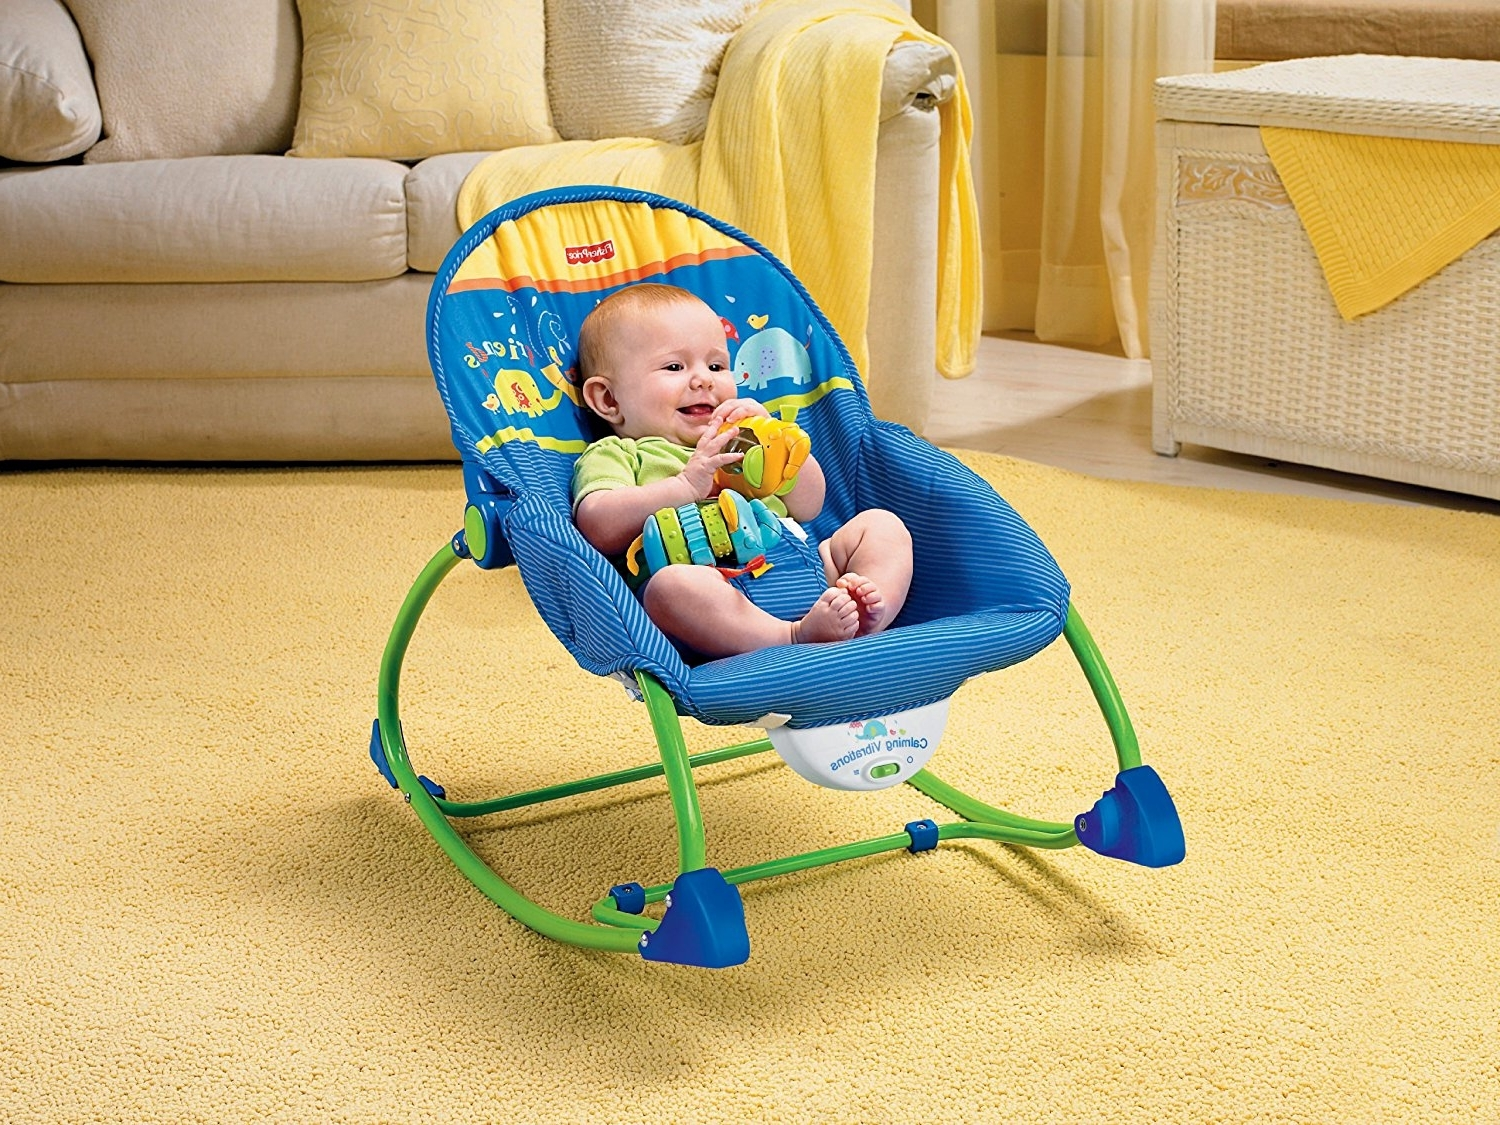 Rocking Chairs For Babies within Preferred Benefits Of Baby Rocking Chair - Bellissimainteriors